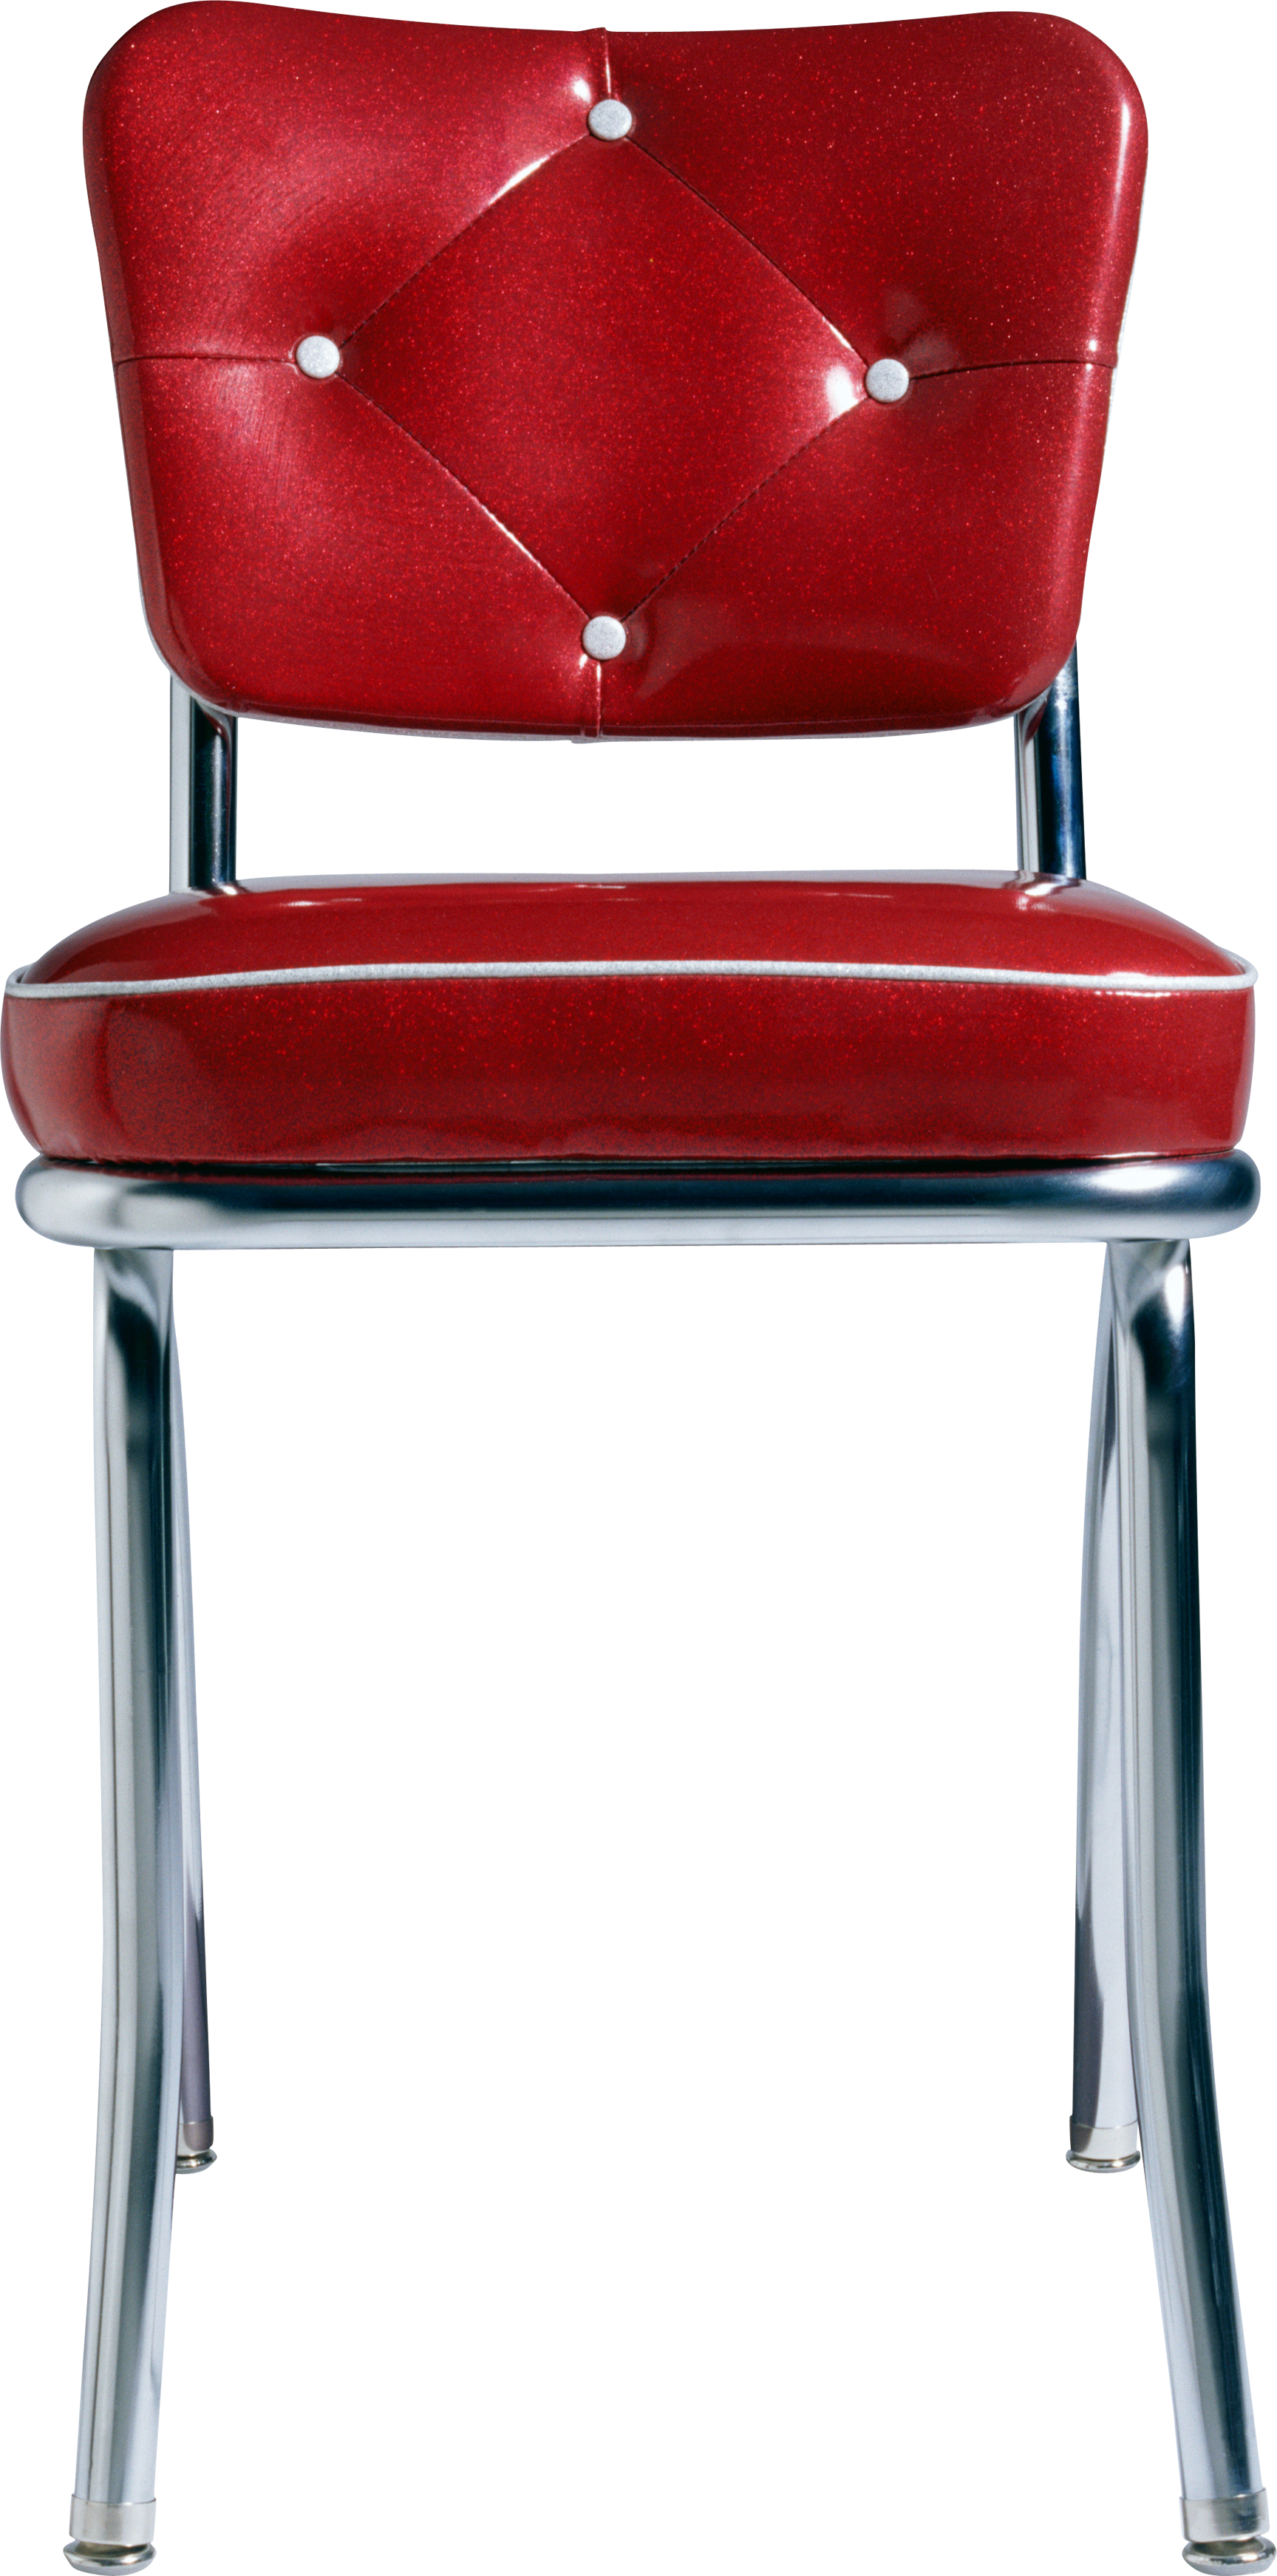 uploads chair chair PNG6849 24